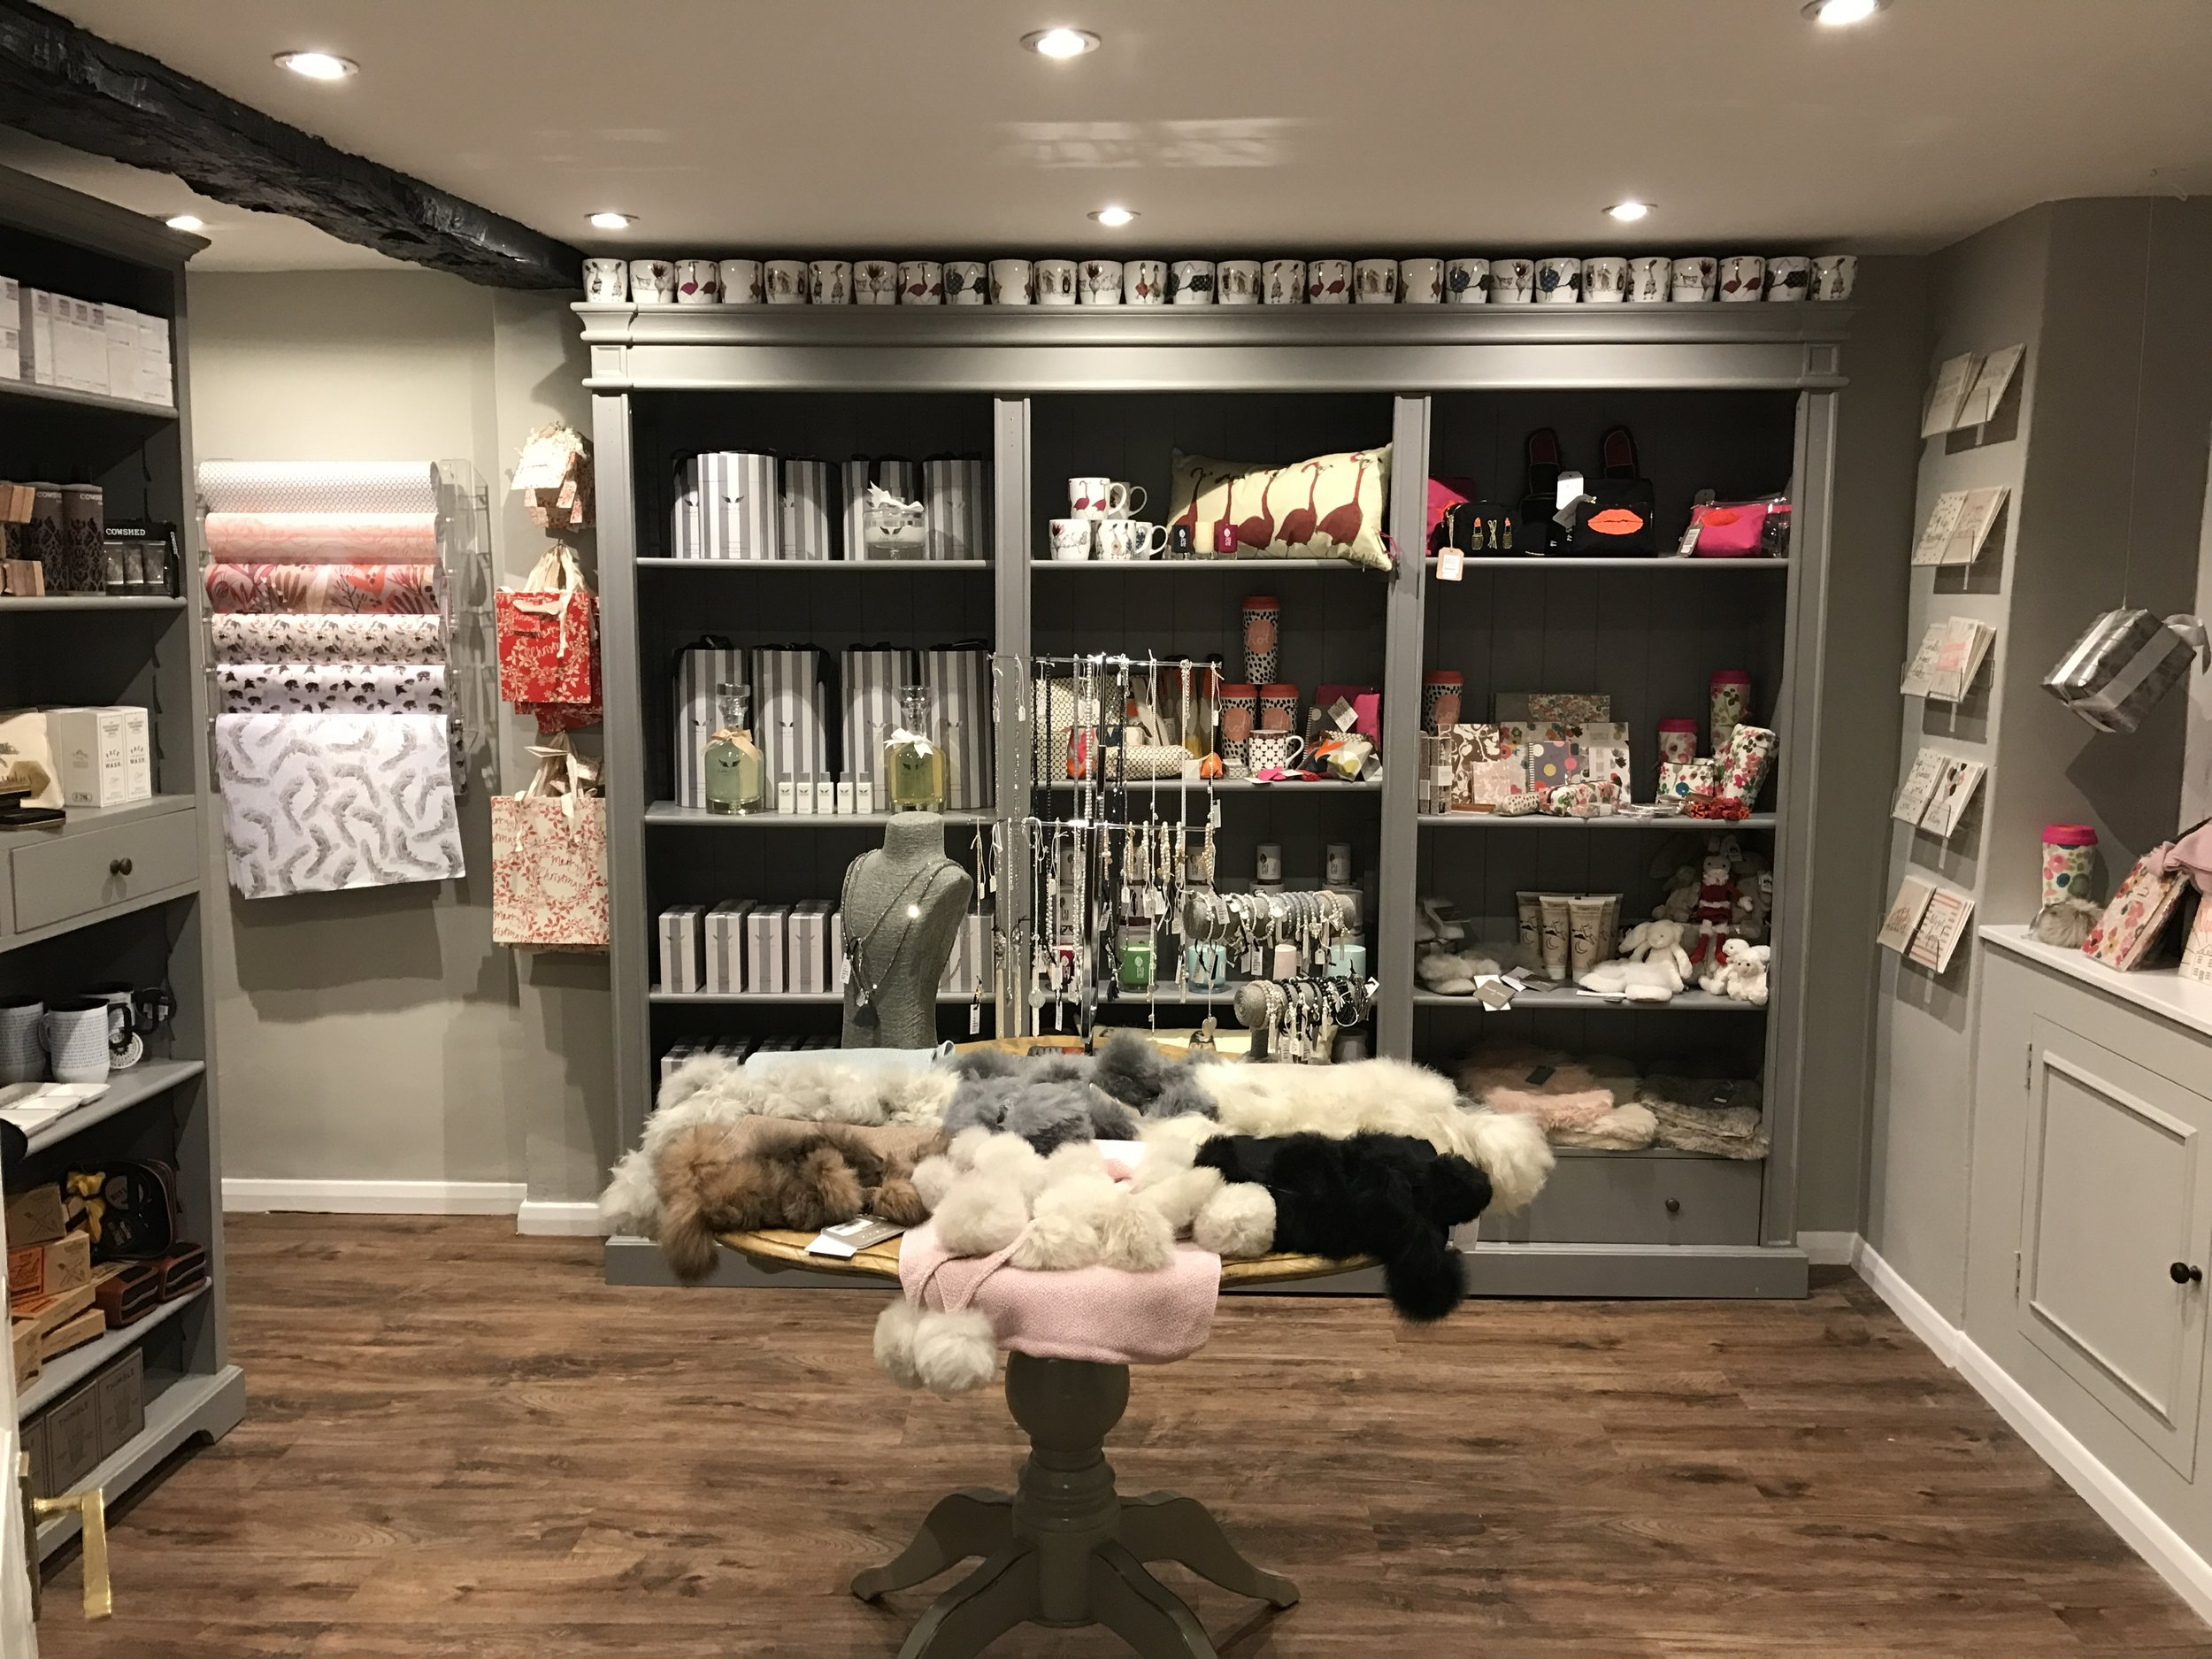 Inside the gift shop in Alresford